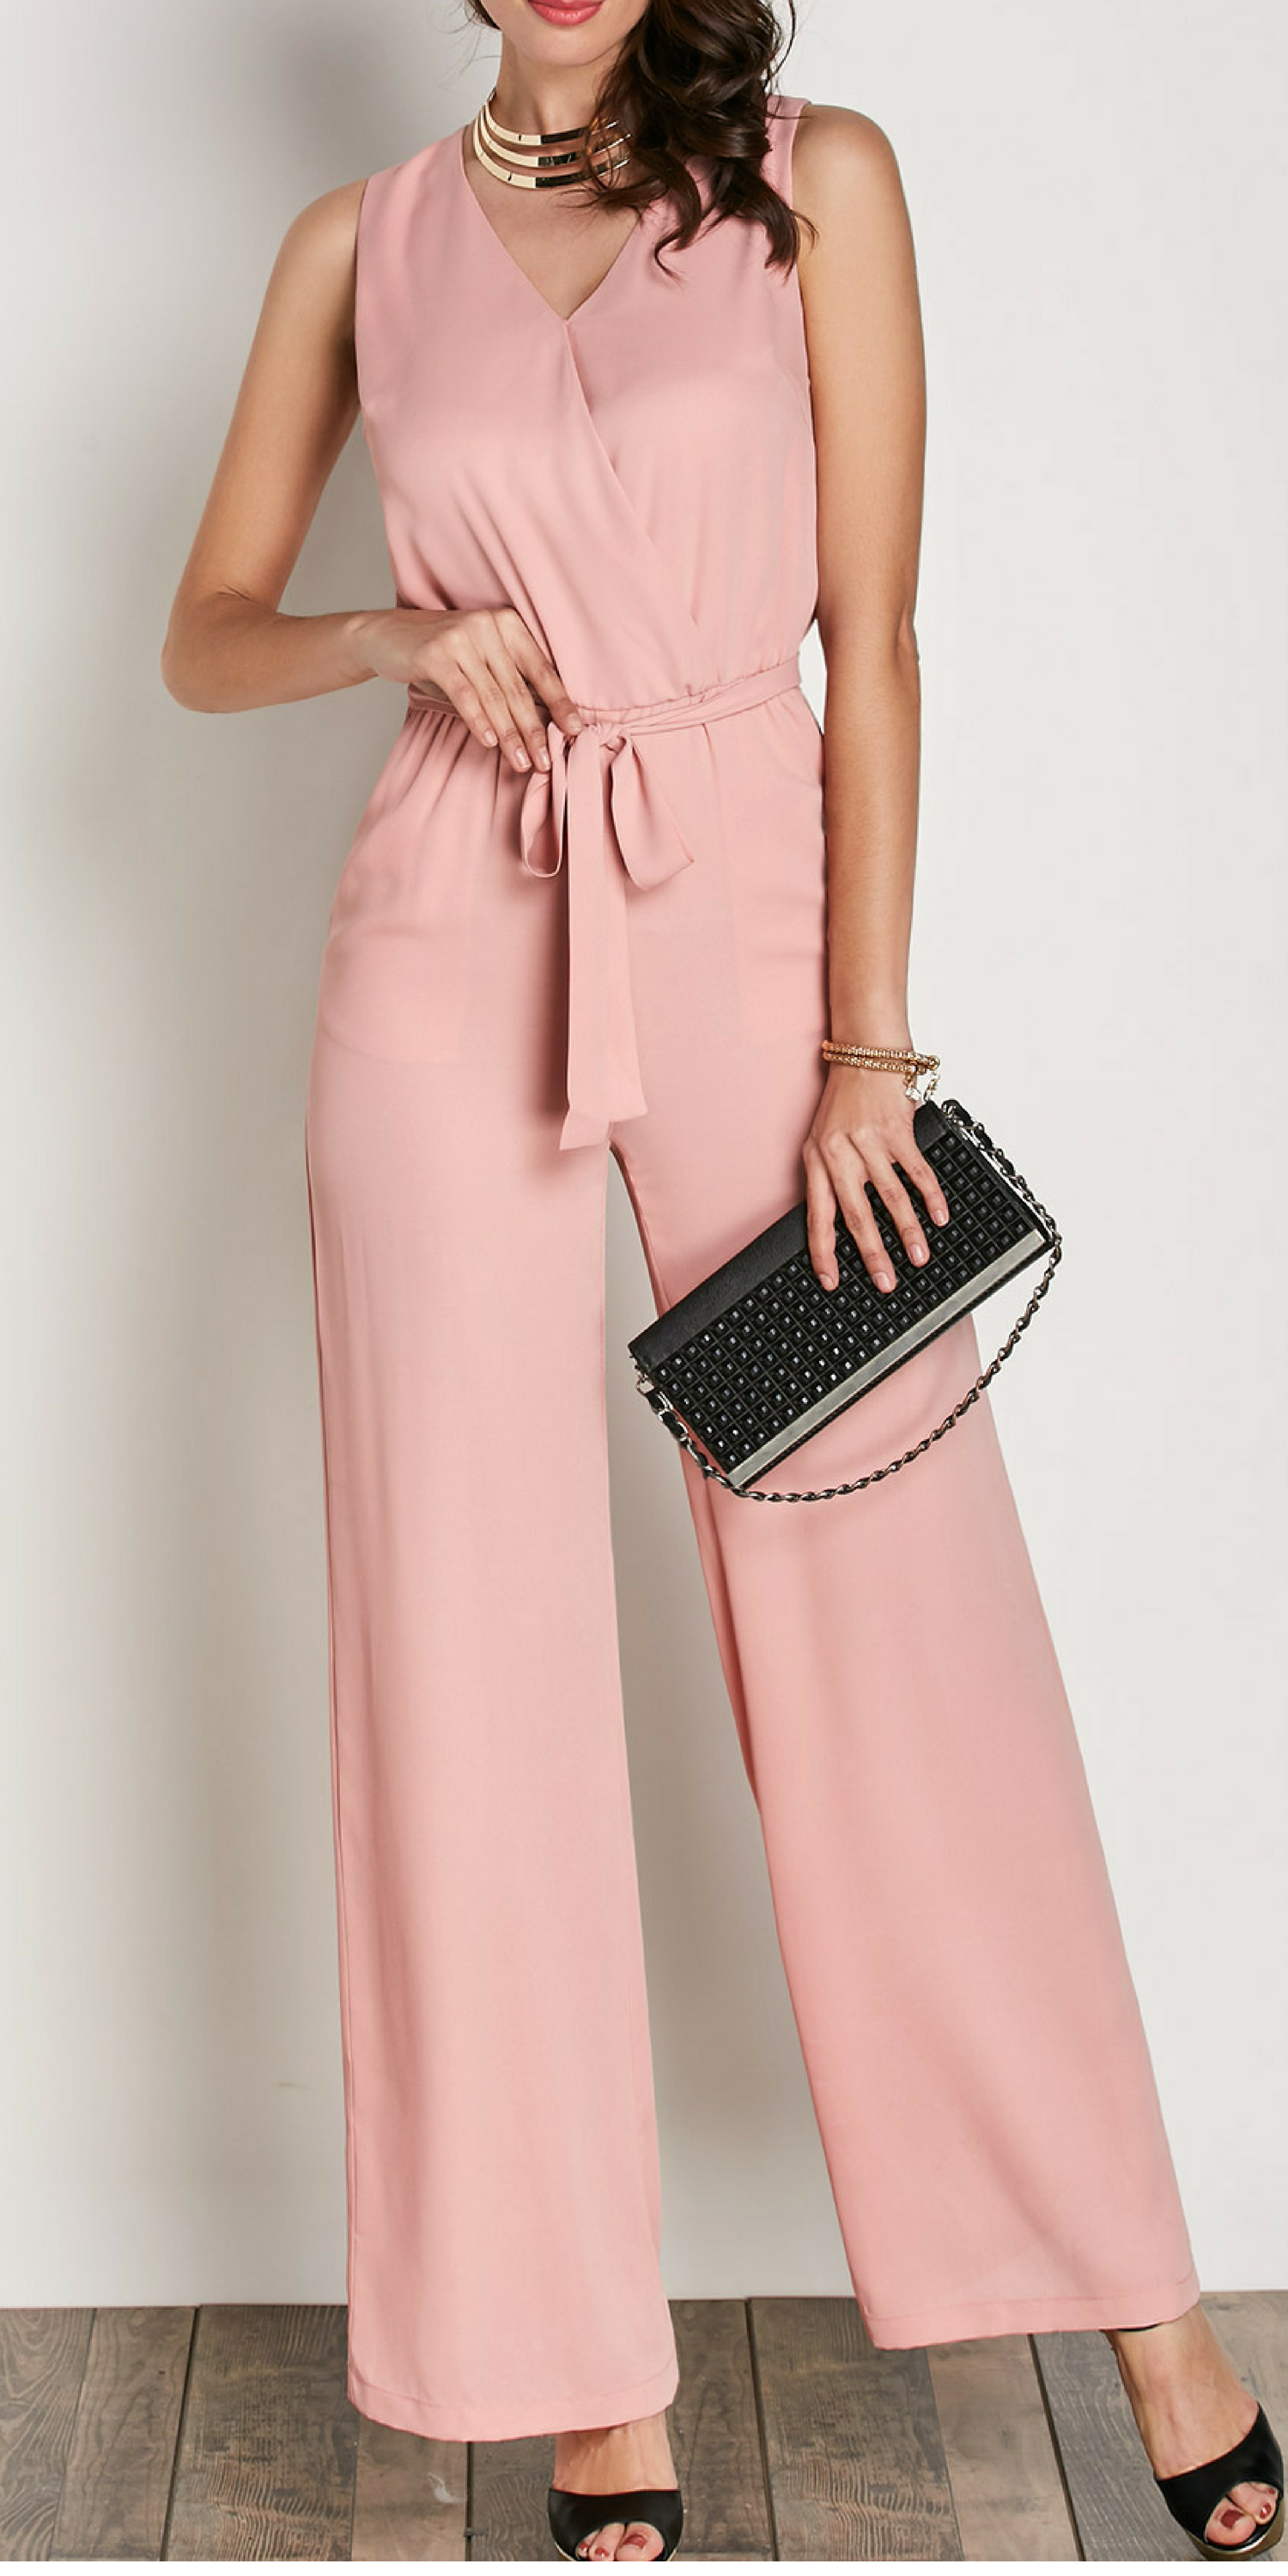 286d6ad95822 Beautiful Women Belted V Neck Pink Sleeveless Jumpsuit  ad  womenfashion   summerstyle  jumpsuits  pink  plussize  plussizefashion  casualoutfit